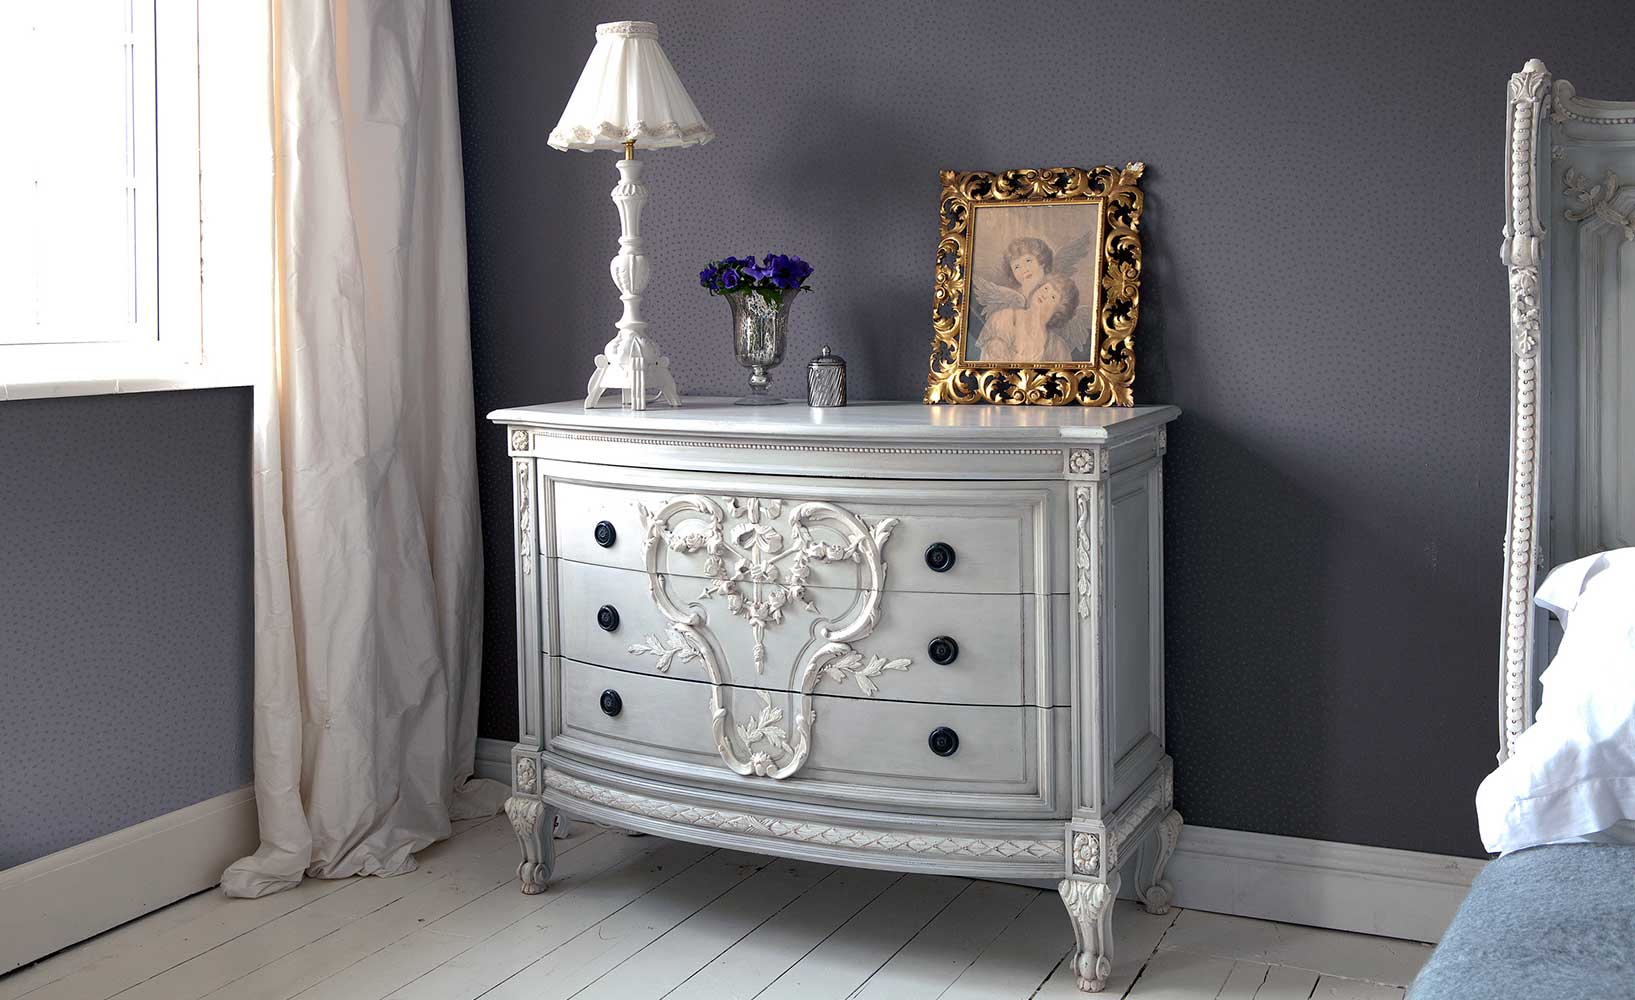 Sideboard Shabby Look 5 Coole Sideboards In Shabby Chic Optik